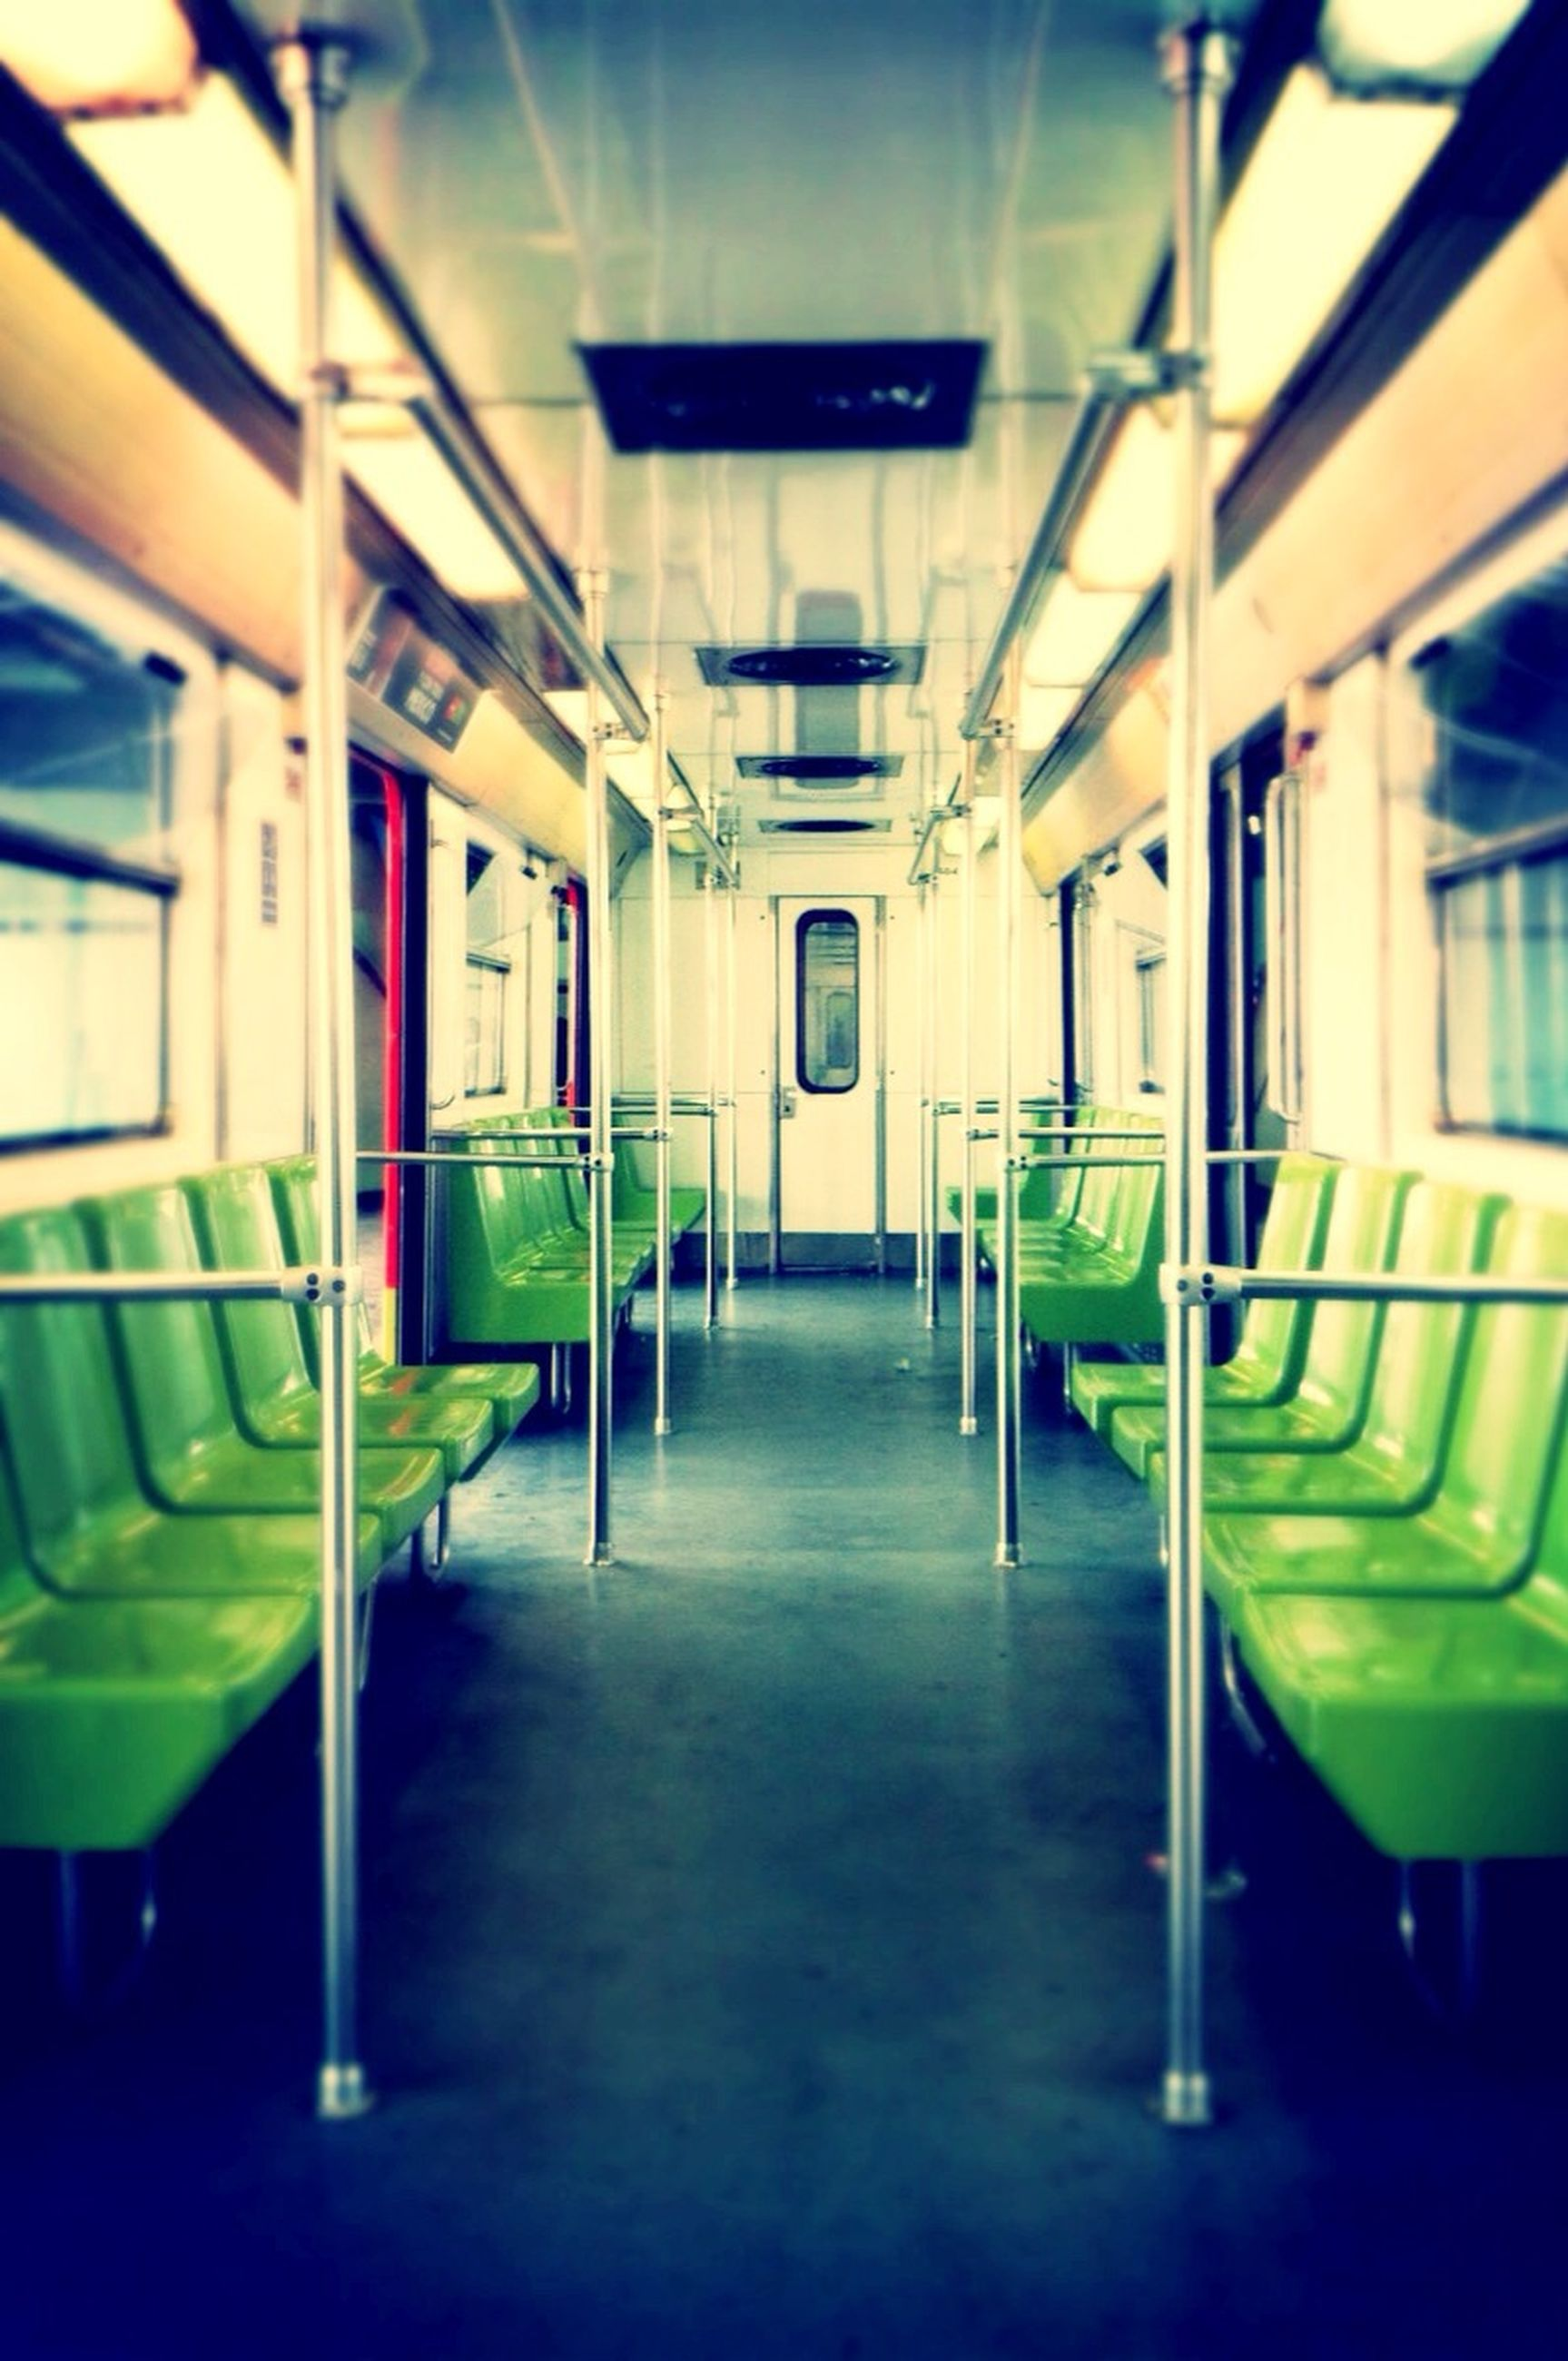 empty, indoors, transportation, built structure, absence, architecture, public transportation, mode of transport, window, in a row, public transport, no people, passenger train, chair, reflection, train - vehicle, seat, illuminated, day, interior